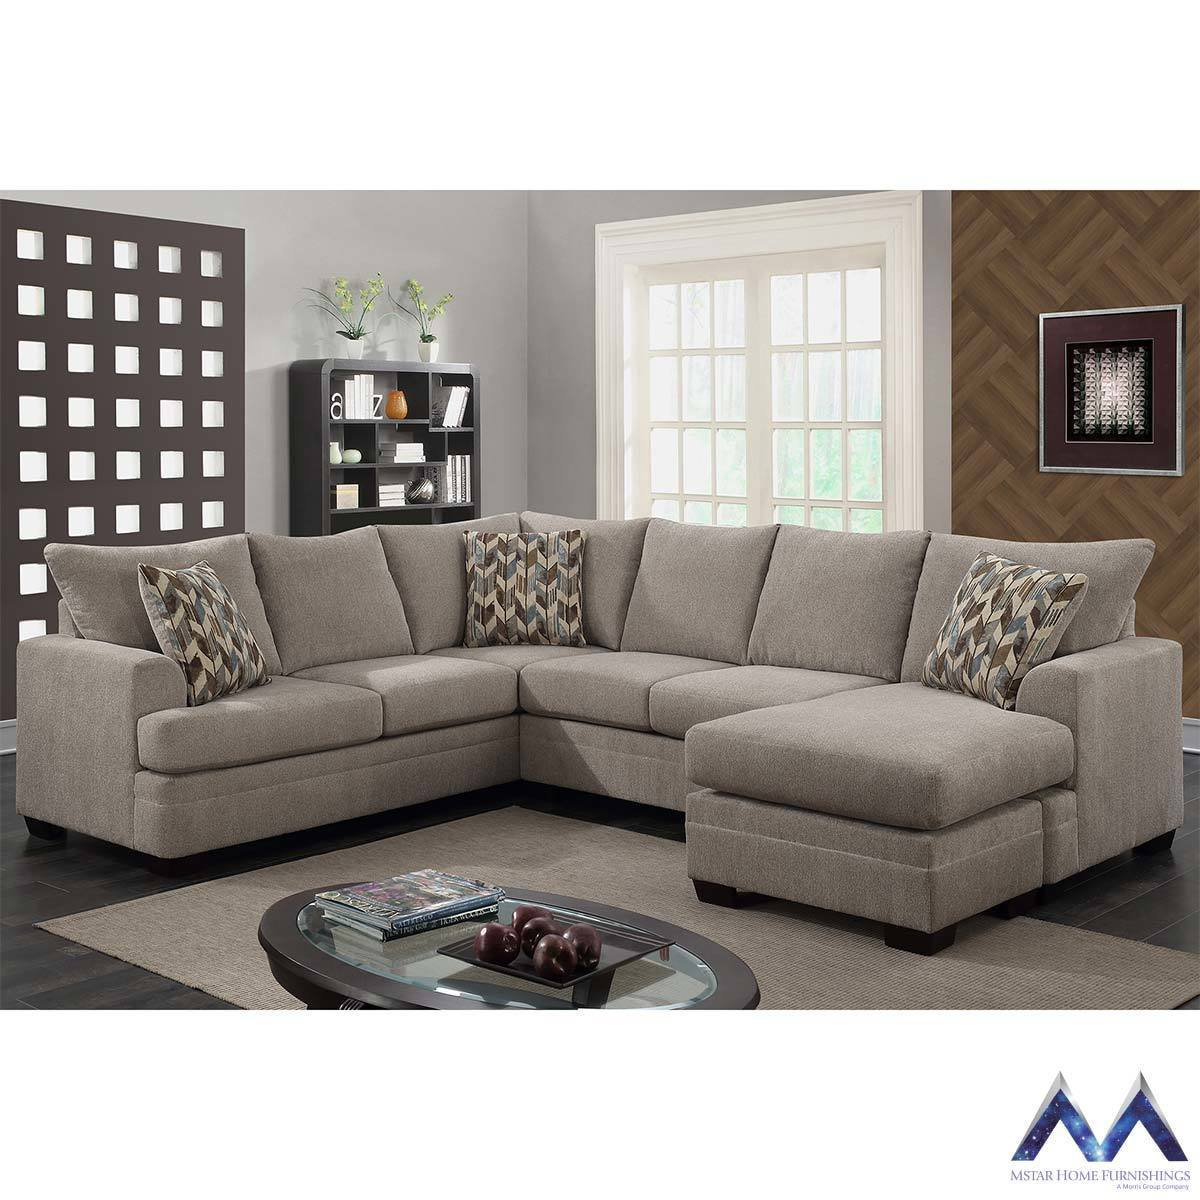 Accent Chairs At Costco Fiona 3 Piece Sectional Sofa With 3 Accent Pillows Costco Uk